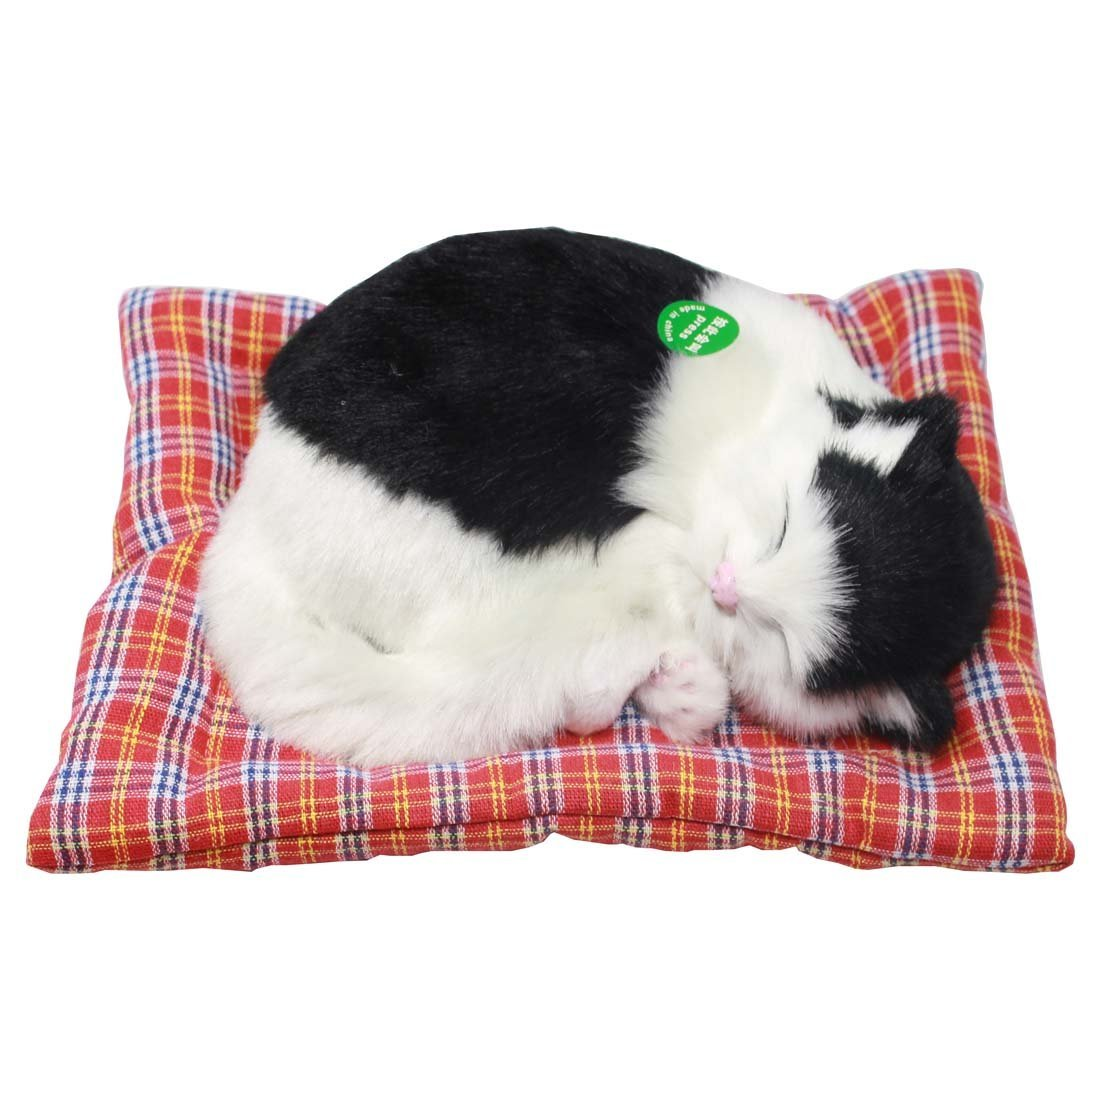 "Sleeping Cat Meow Kitten Pet Toy with Mat 7.6"" (Black & White)"